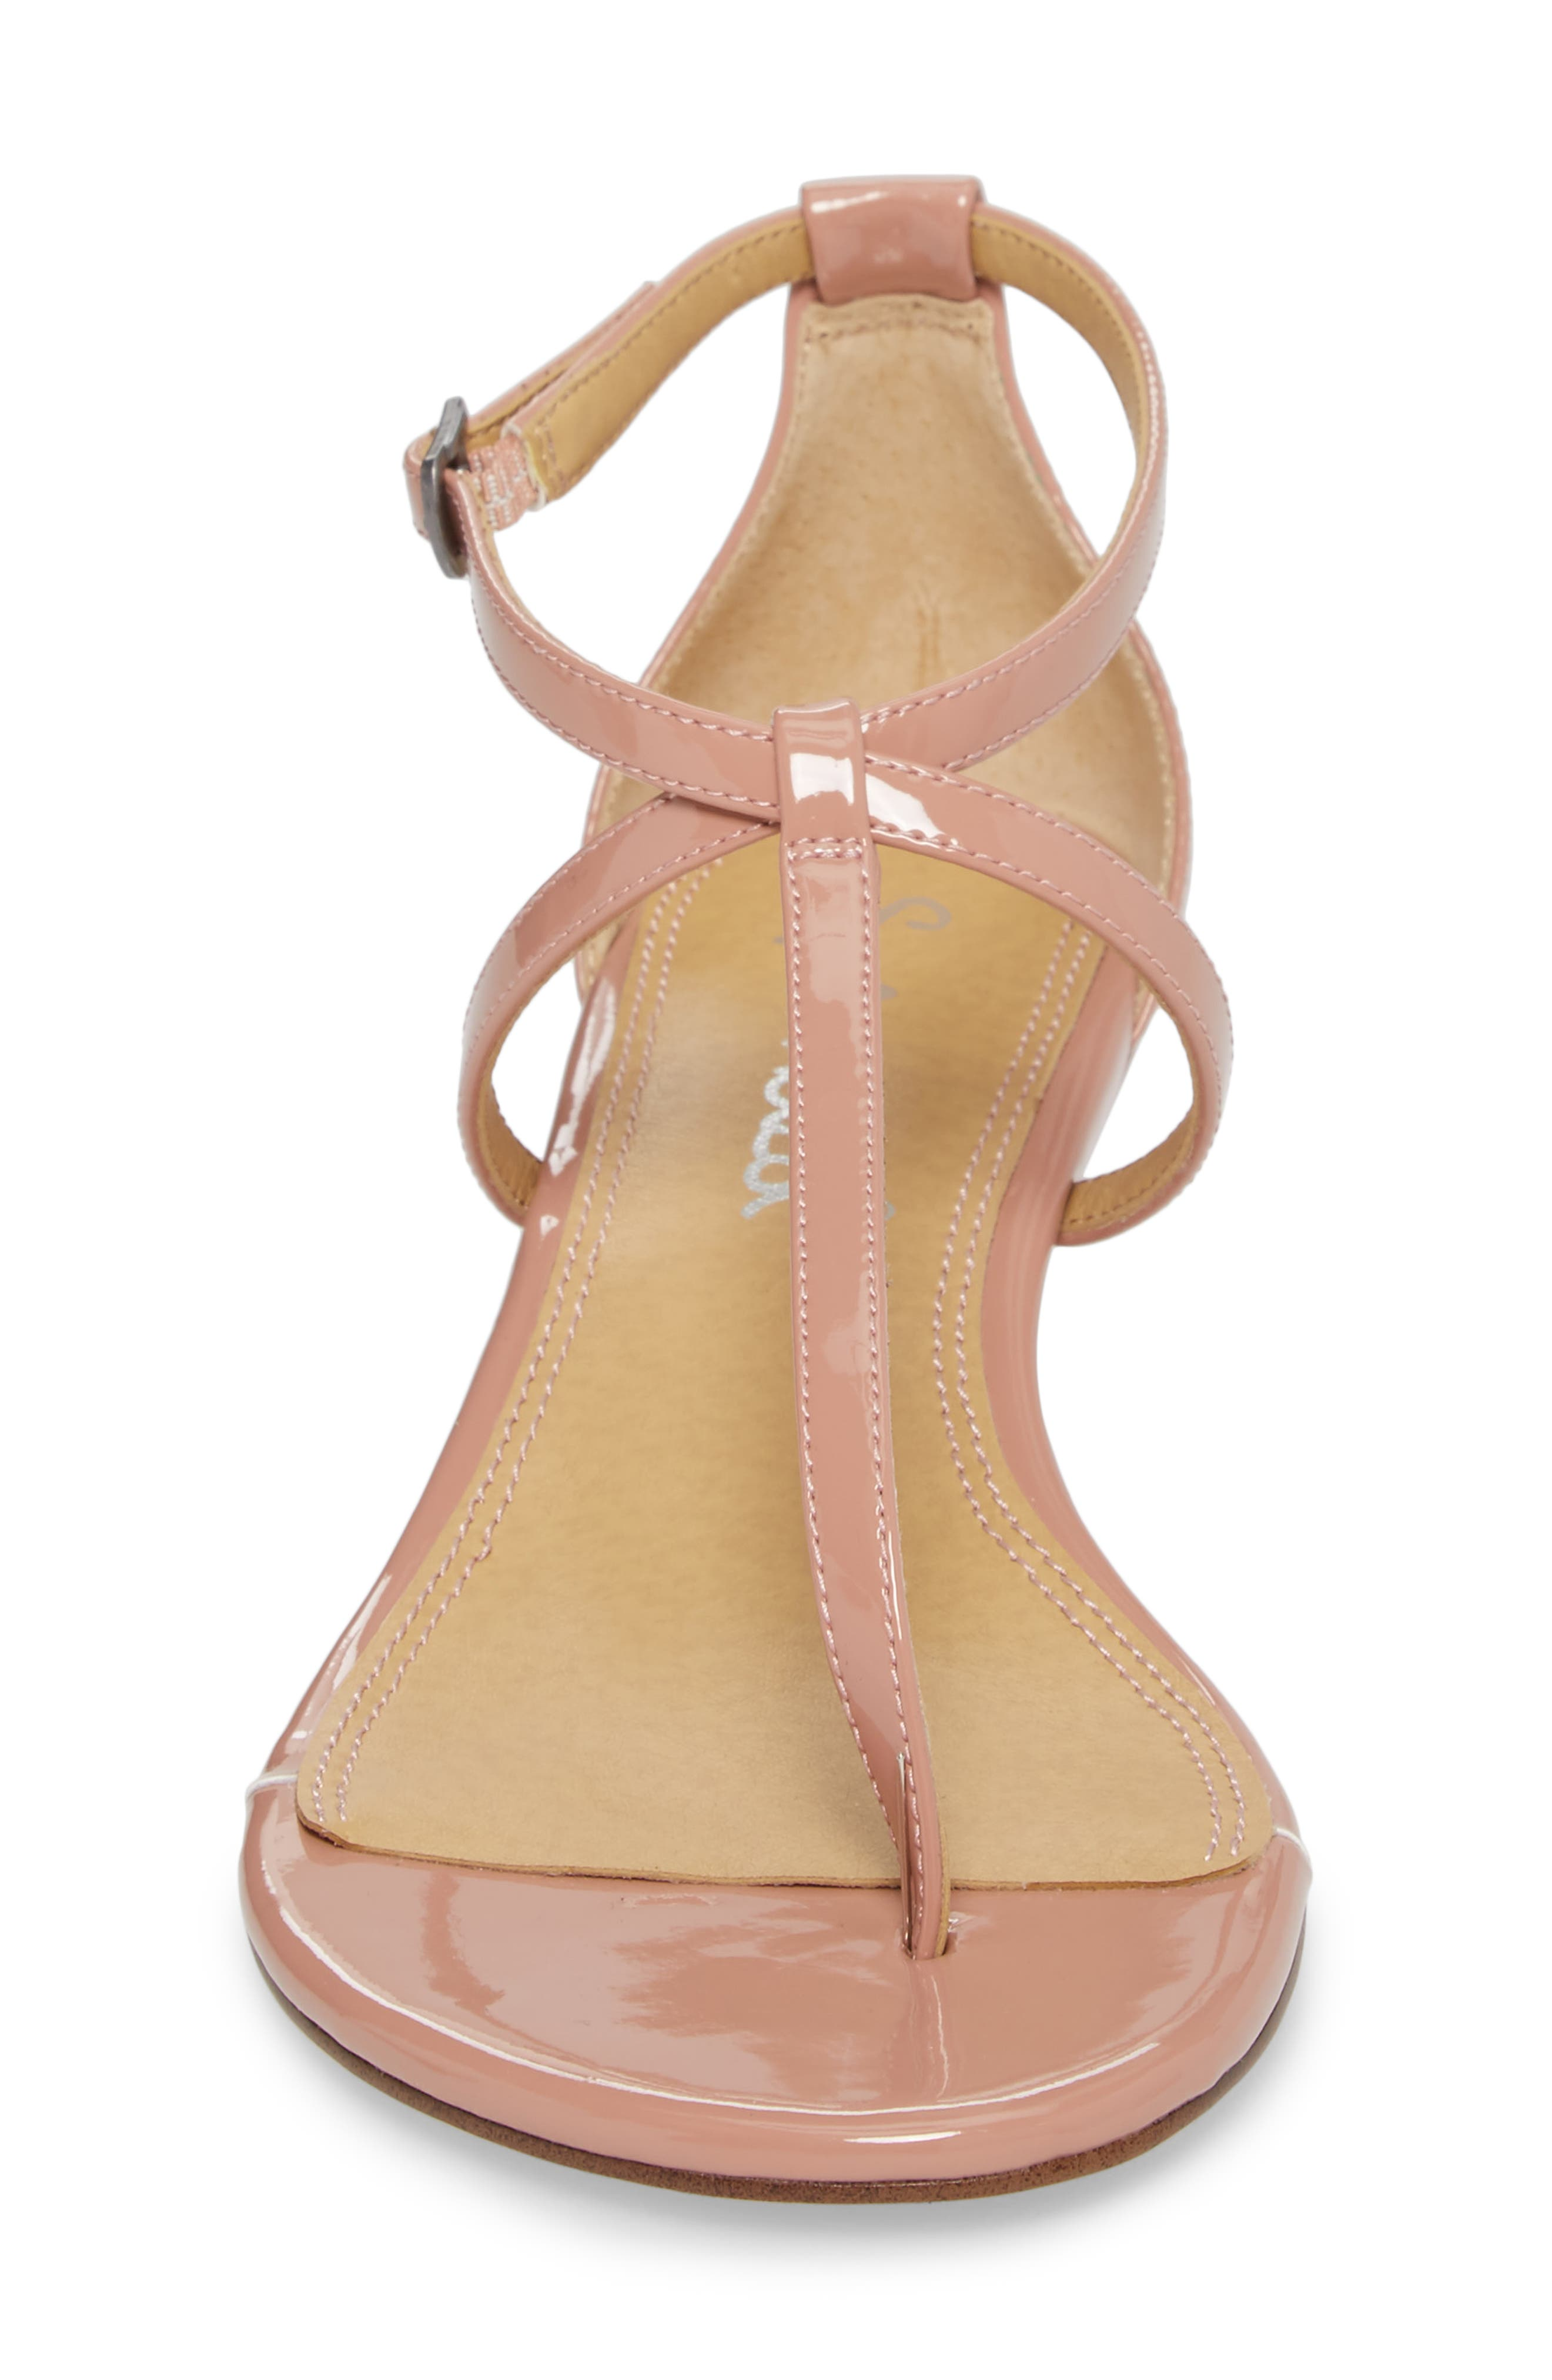 Bryce T-Strap Wedge Sandal,                             Alternate thumbnail 4, color,                             DARK BLUSH PATENT